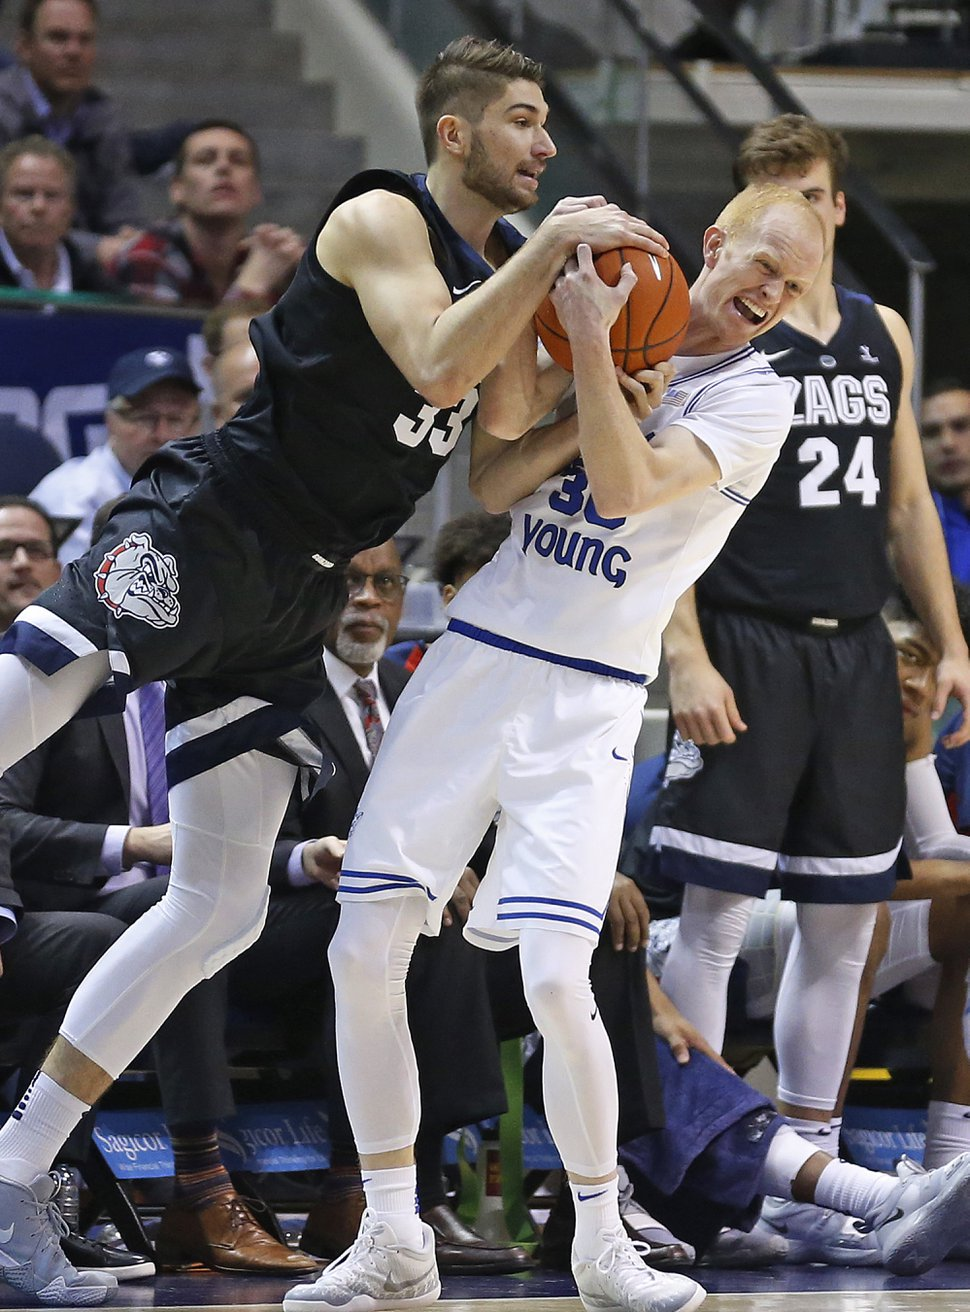 Gonzaga forward Killian Tillie (33) and BYU guard TJ Haws, right, vie for the ball during the second half of an NCAA college basketball game Thursday, Jan. 31, 2019, in Provo, Utah. (AP Photo/Rick Bowmer)